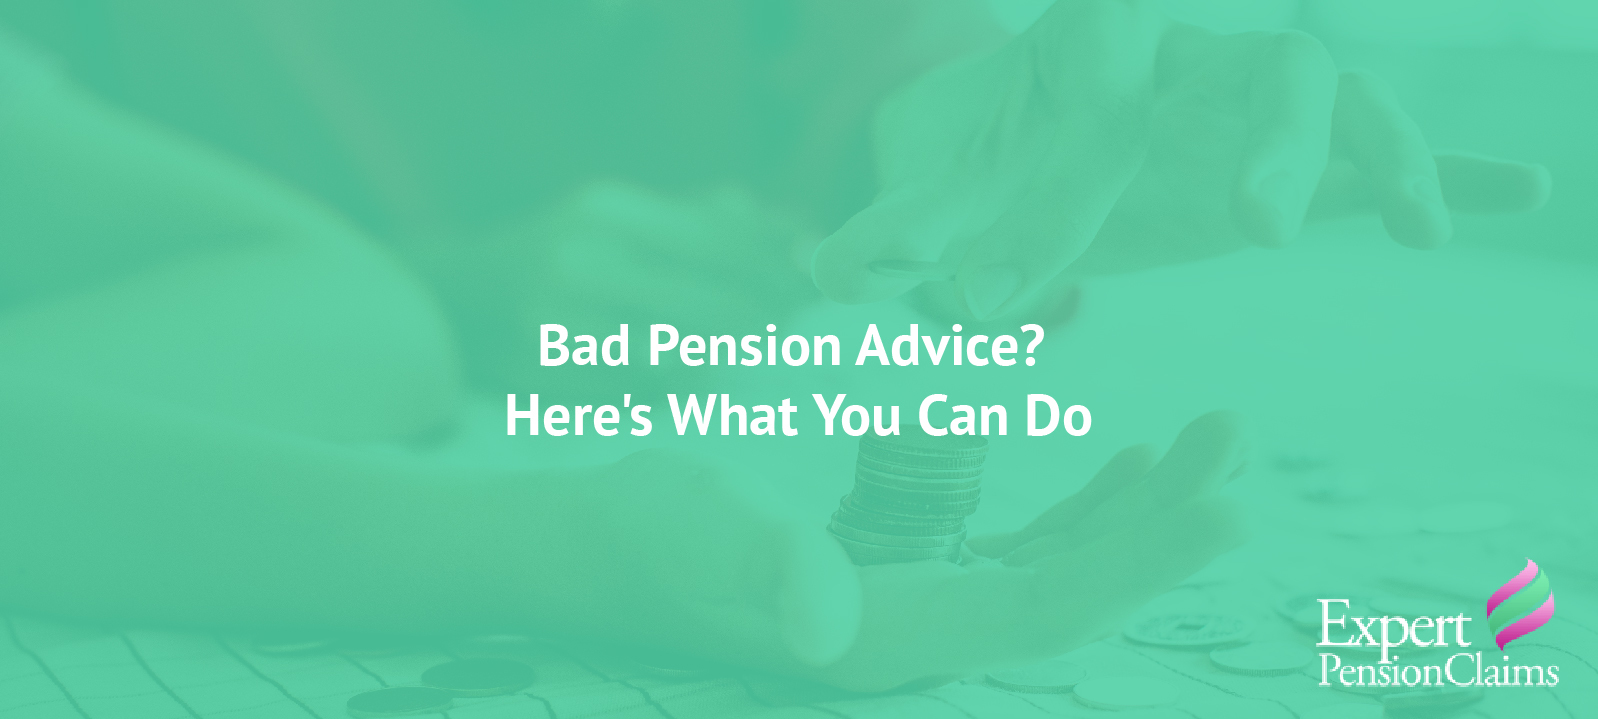 Bad pension advice? Here's what you can do